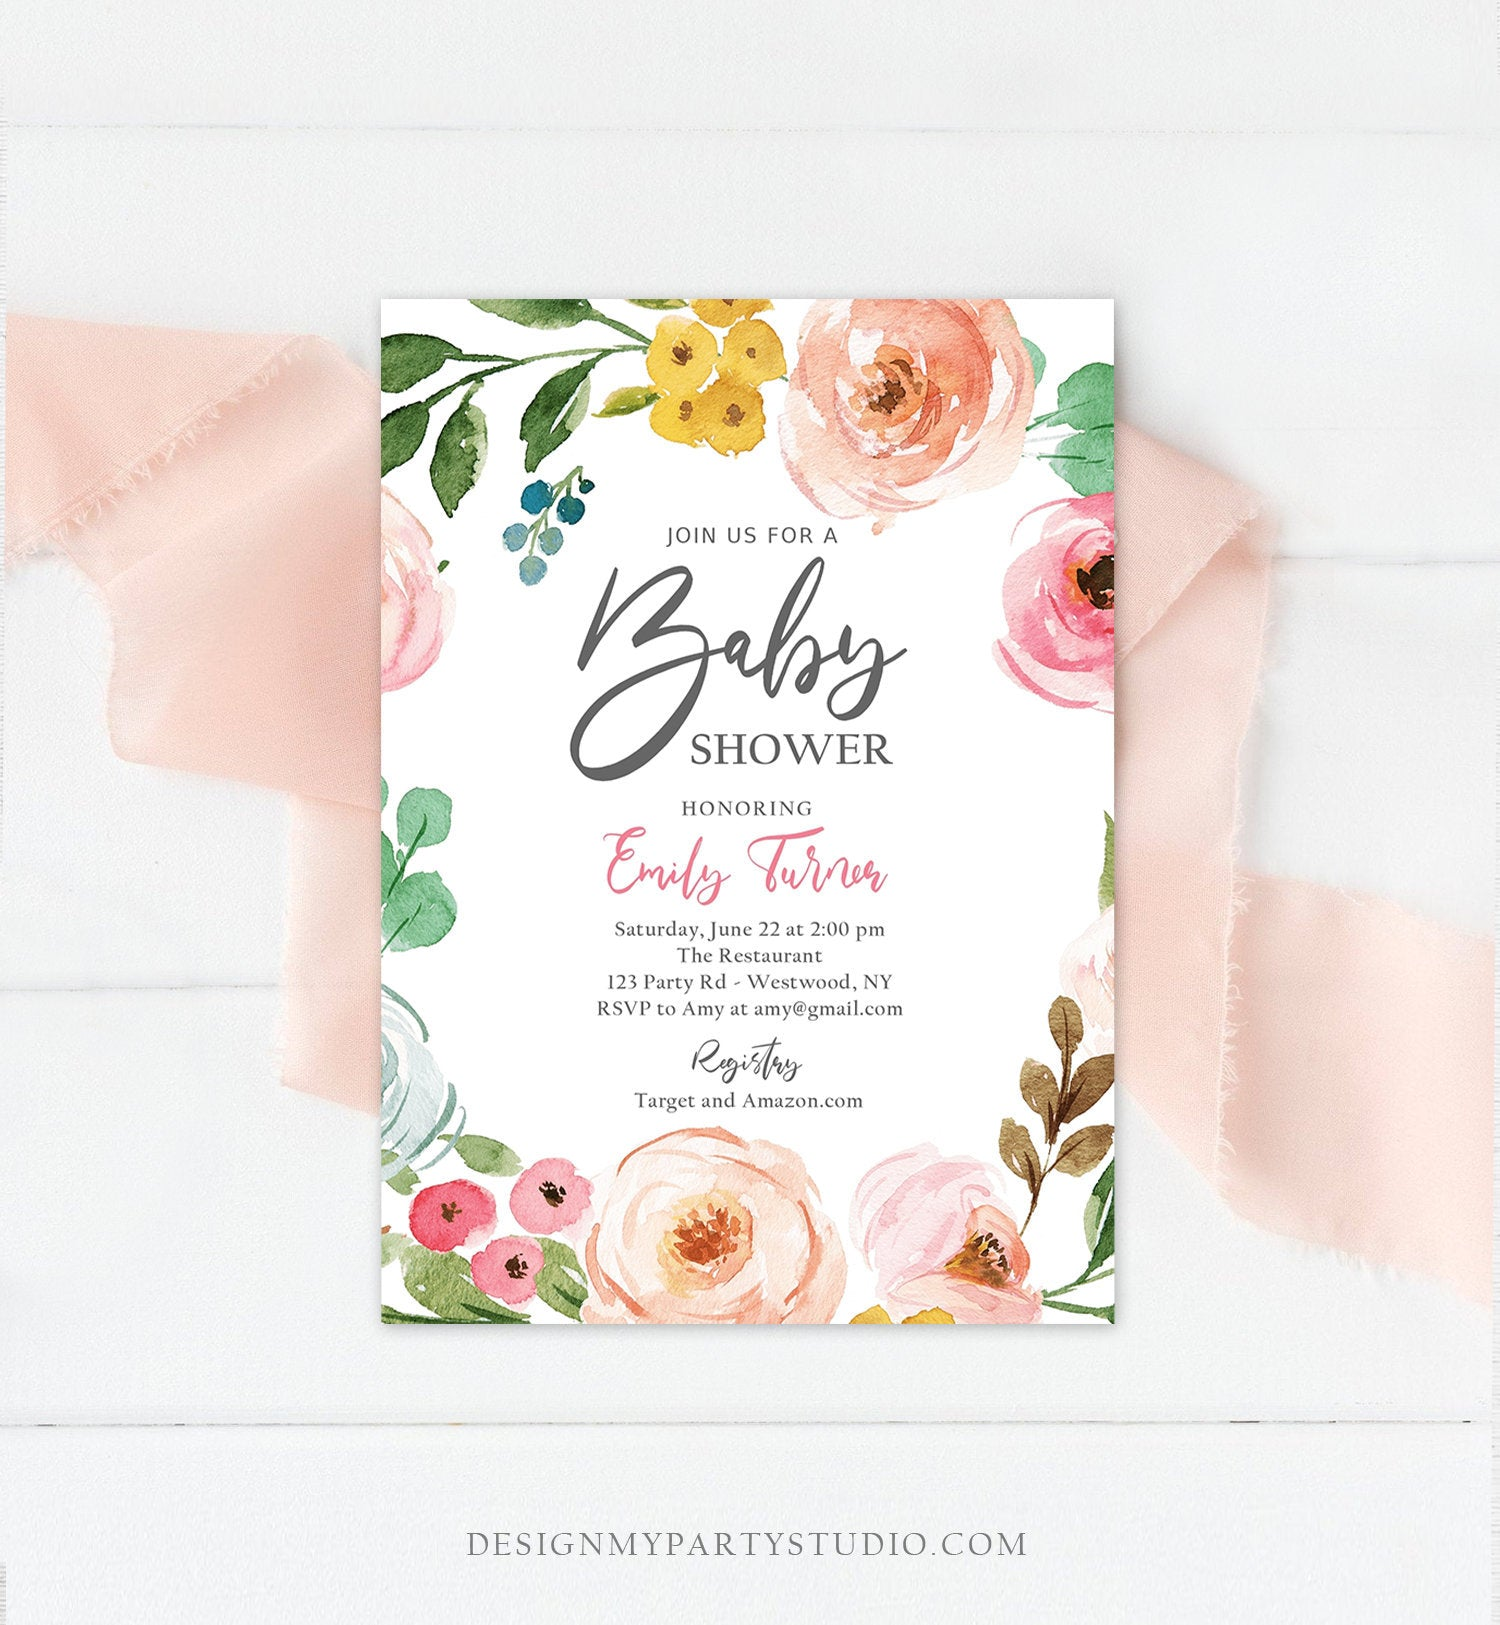 Editable Floral Baby Shower Invitation Floral Pink Bohemian Baby Sprinkle Shower for Girl Spring Summer Boho Printable Corjl Template 0166